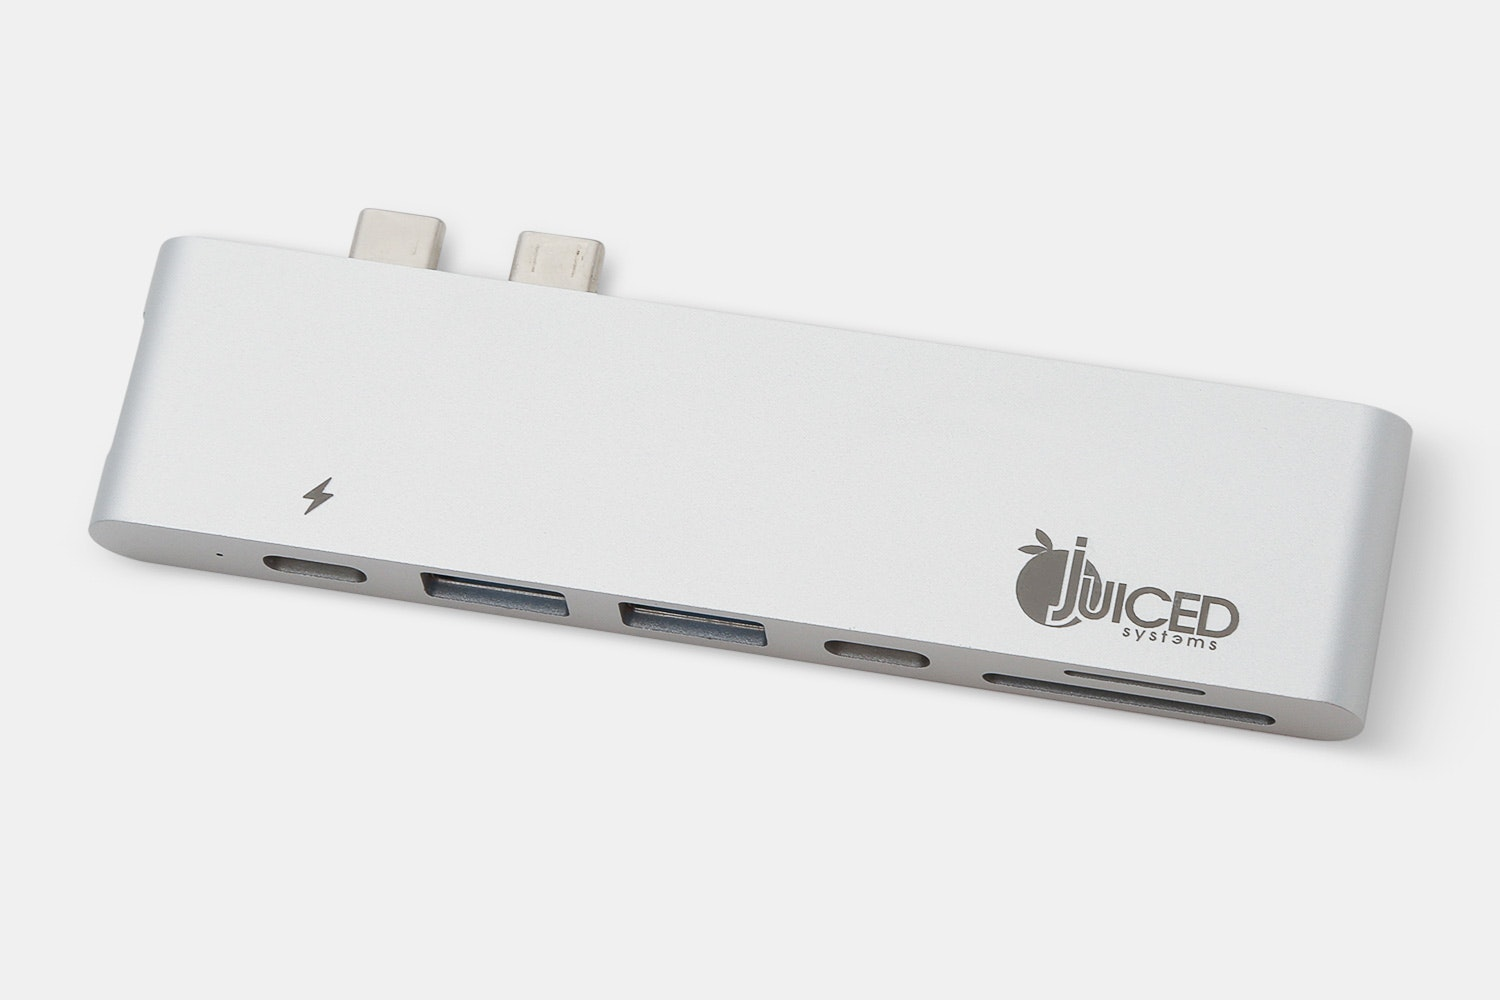 Juiced USB-C UltraHUB -MacBook Pro USB-C HDMI Multiport Adapter – Silver (+ $28)